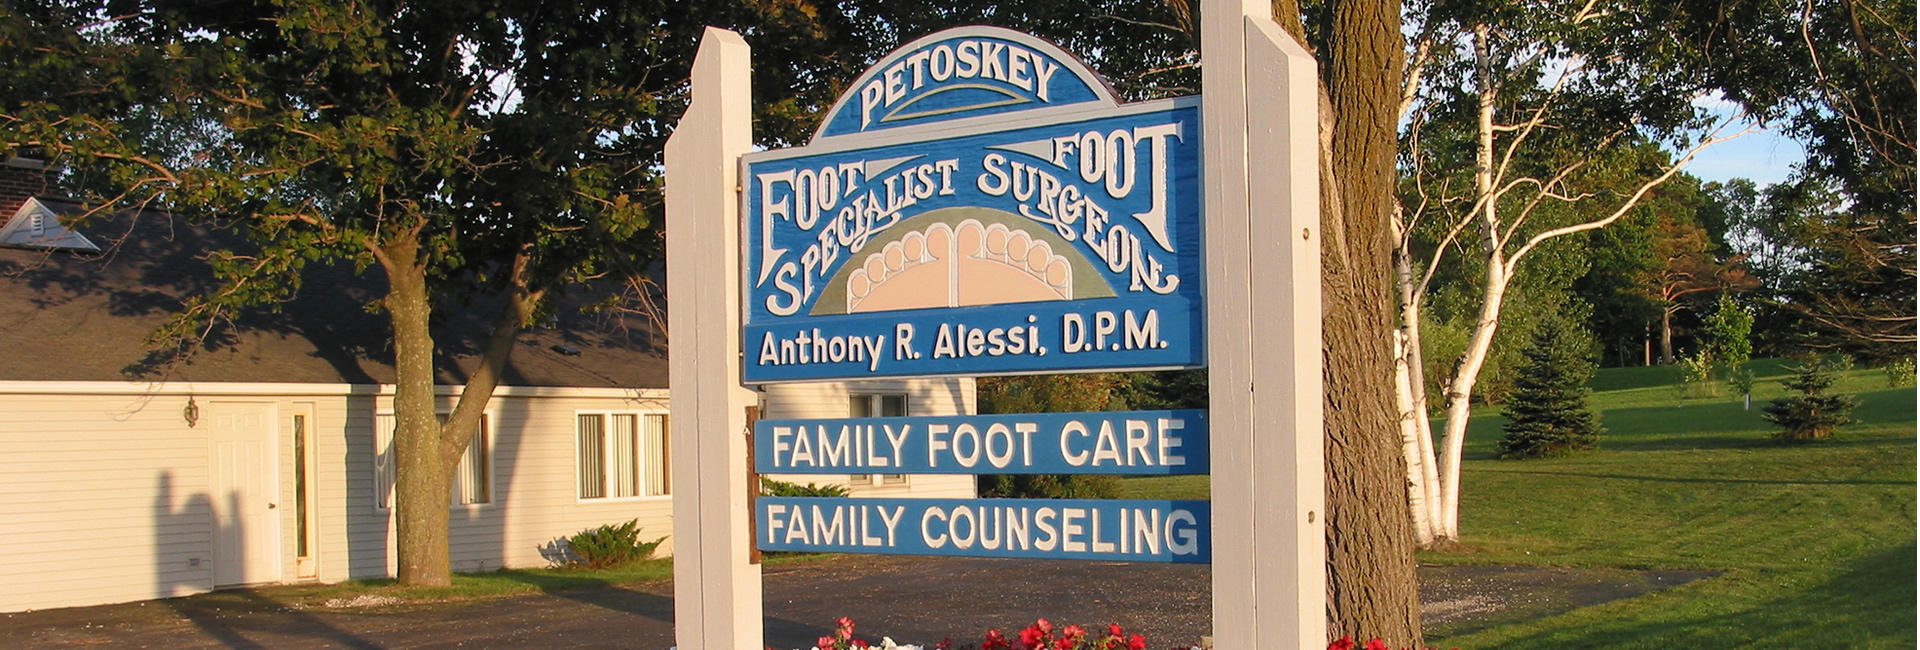 Petoskey Family Foot Care